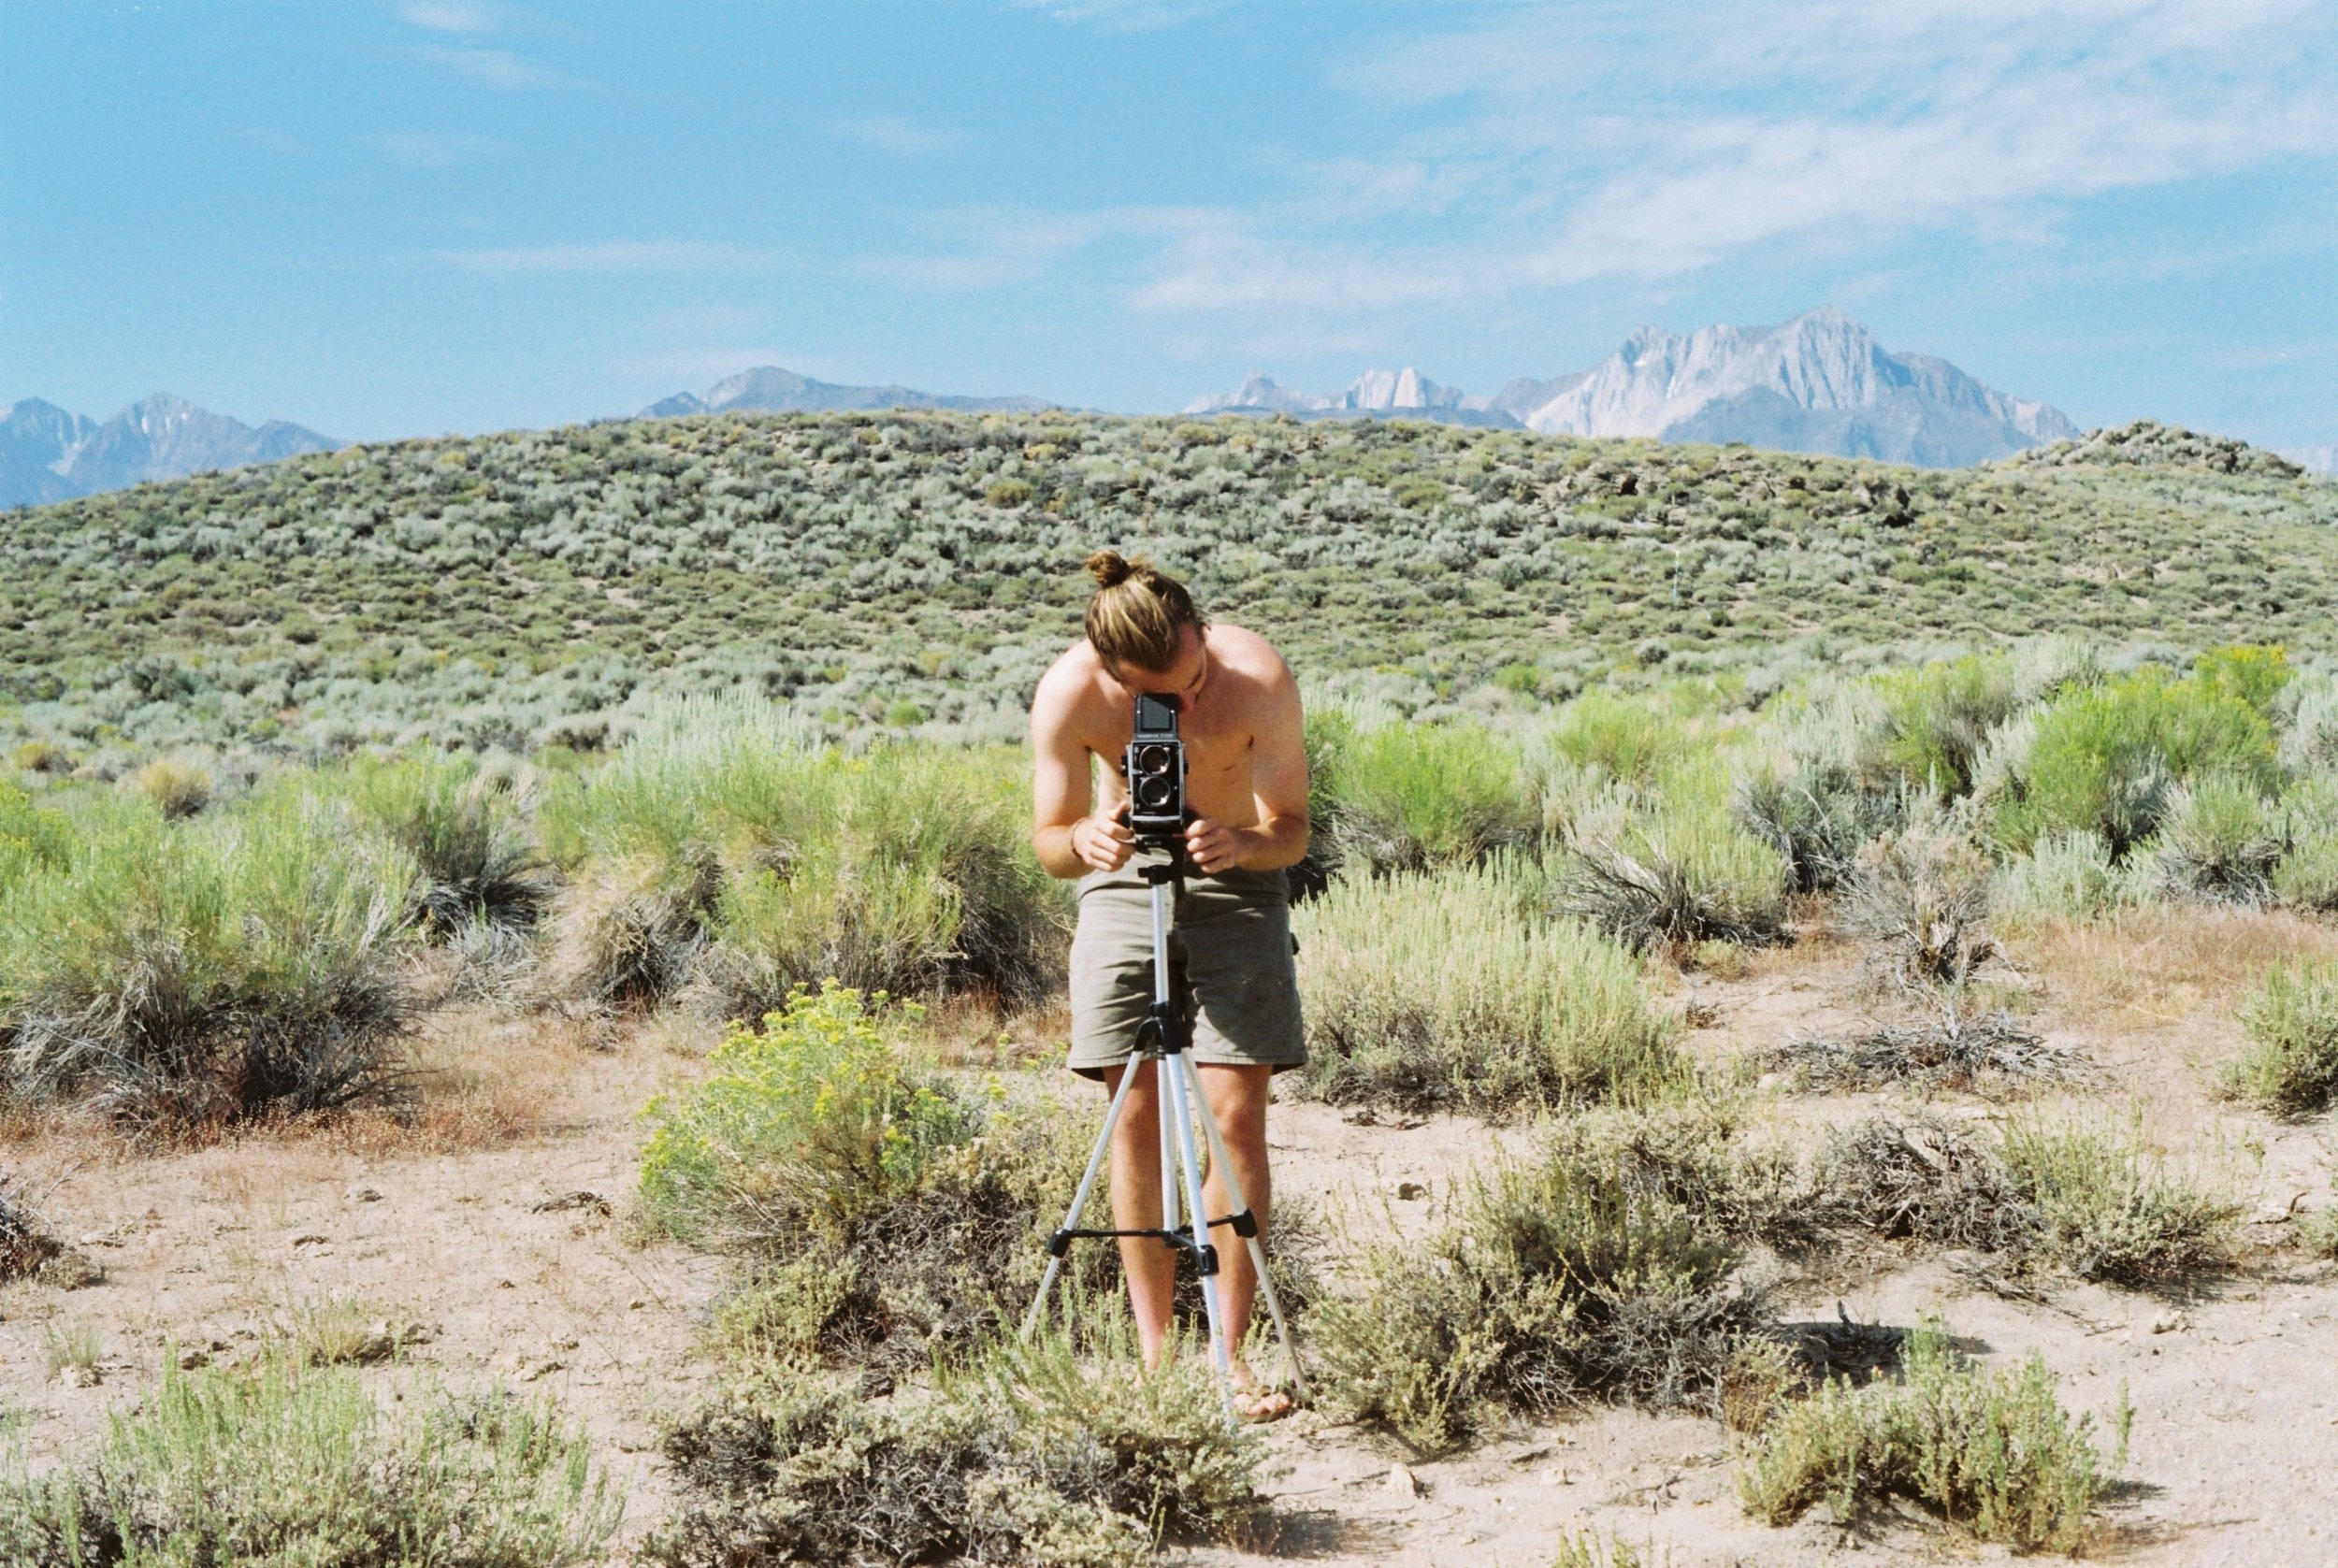 Owens Valley Medium Format Camera